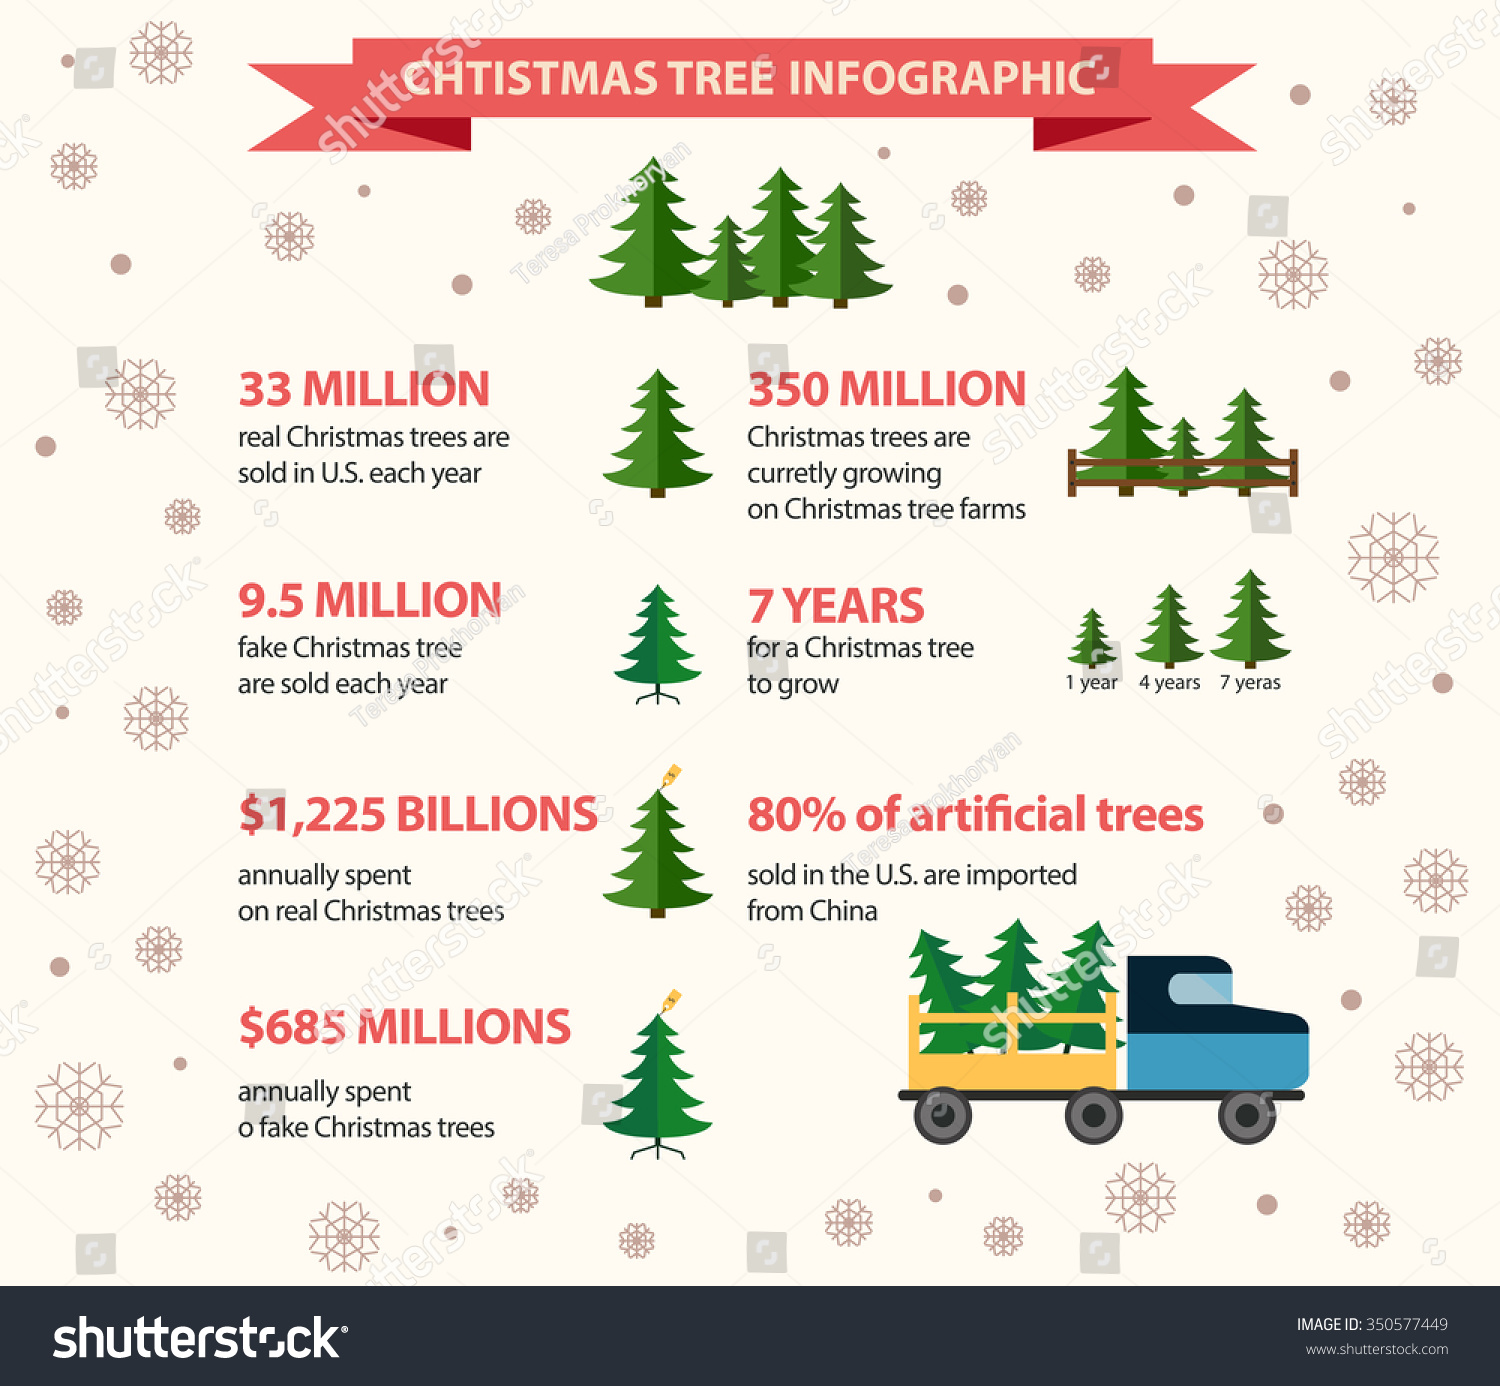 Christmas Tree Infographic Made Vector Stock Vector (Royalty Free ...